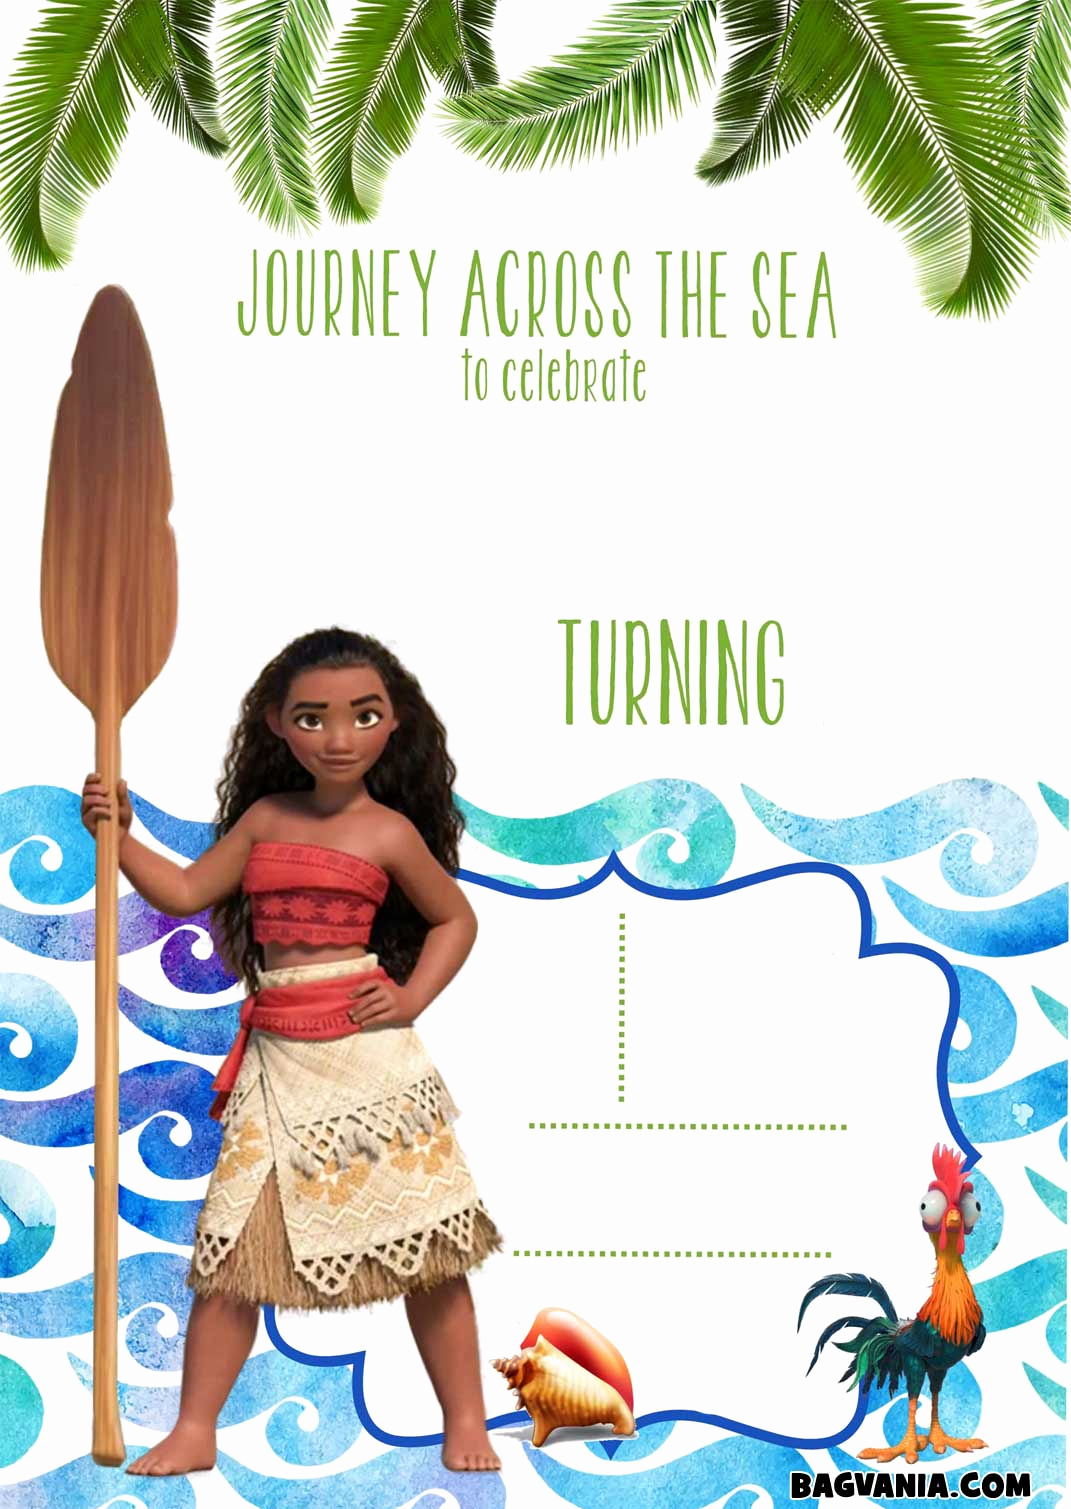 Free Moana Invitation Template Inspirational Free Printable Moana Birthday Invitation Templates – Free